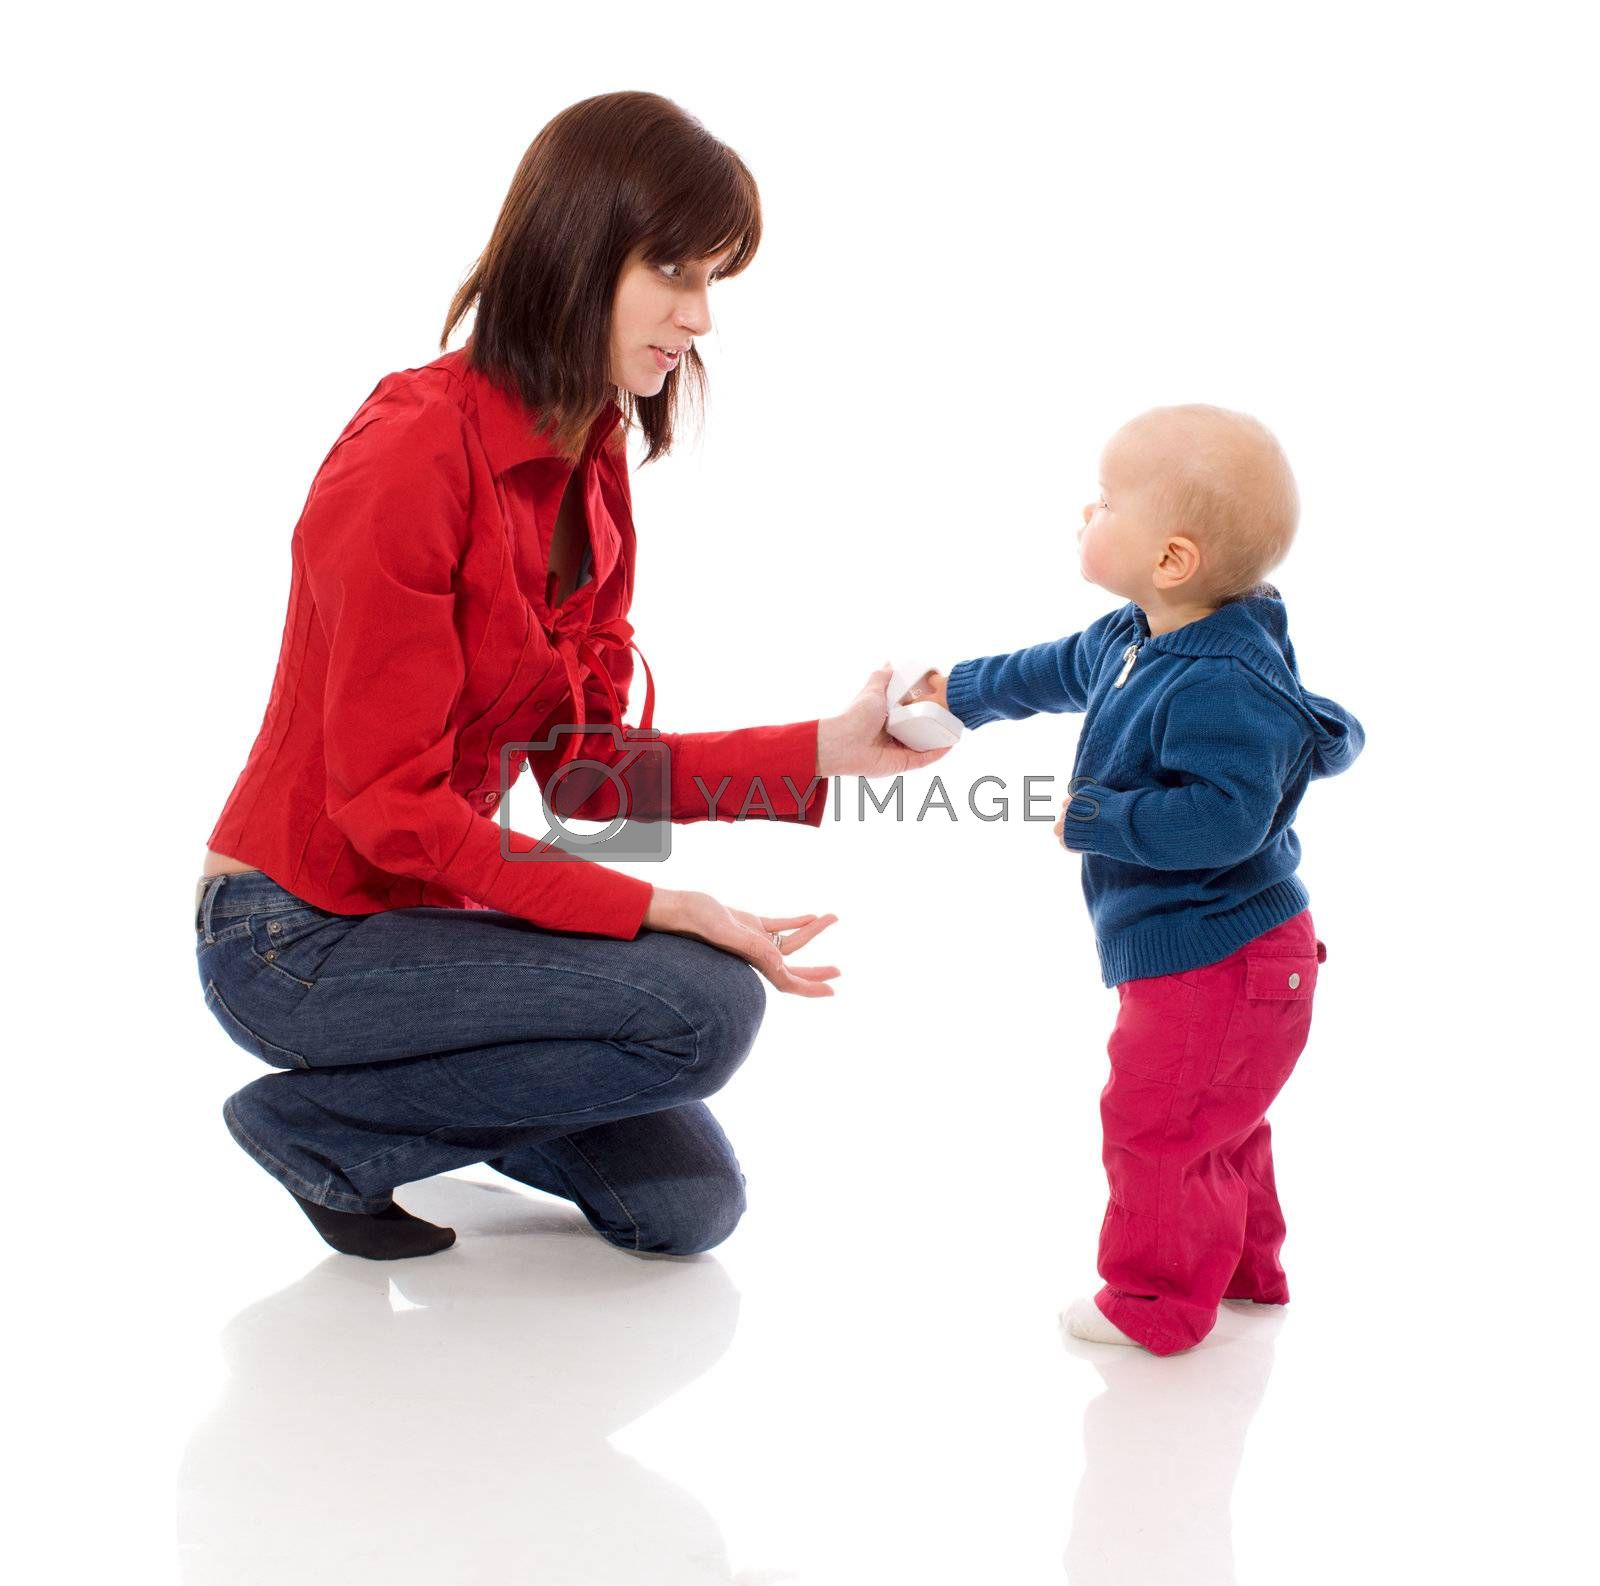 Toddler sharing toy with mother isolated on white